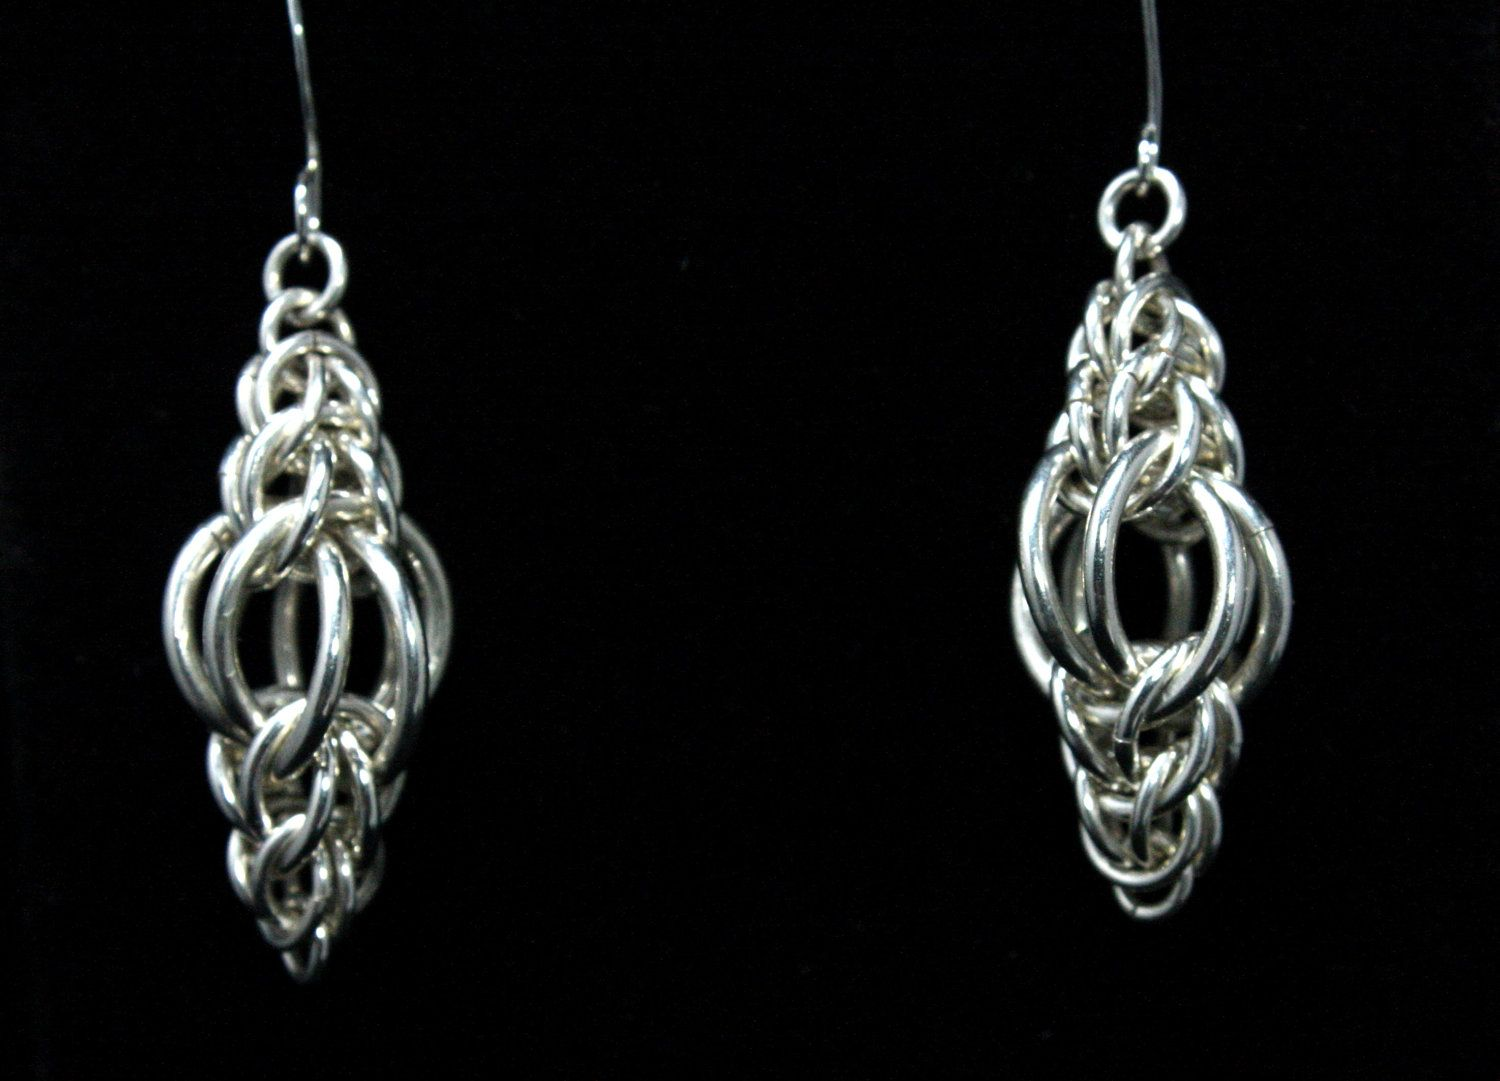 Alexander Wong - a new collection of jewelry in the form of bicycle chains